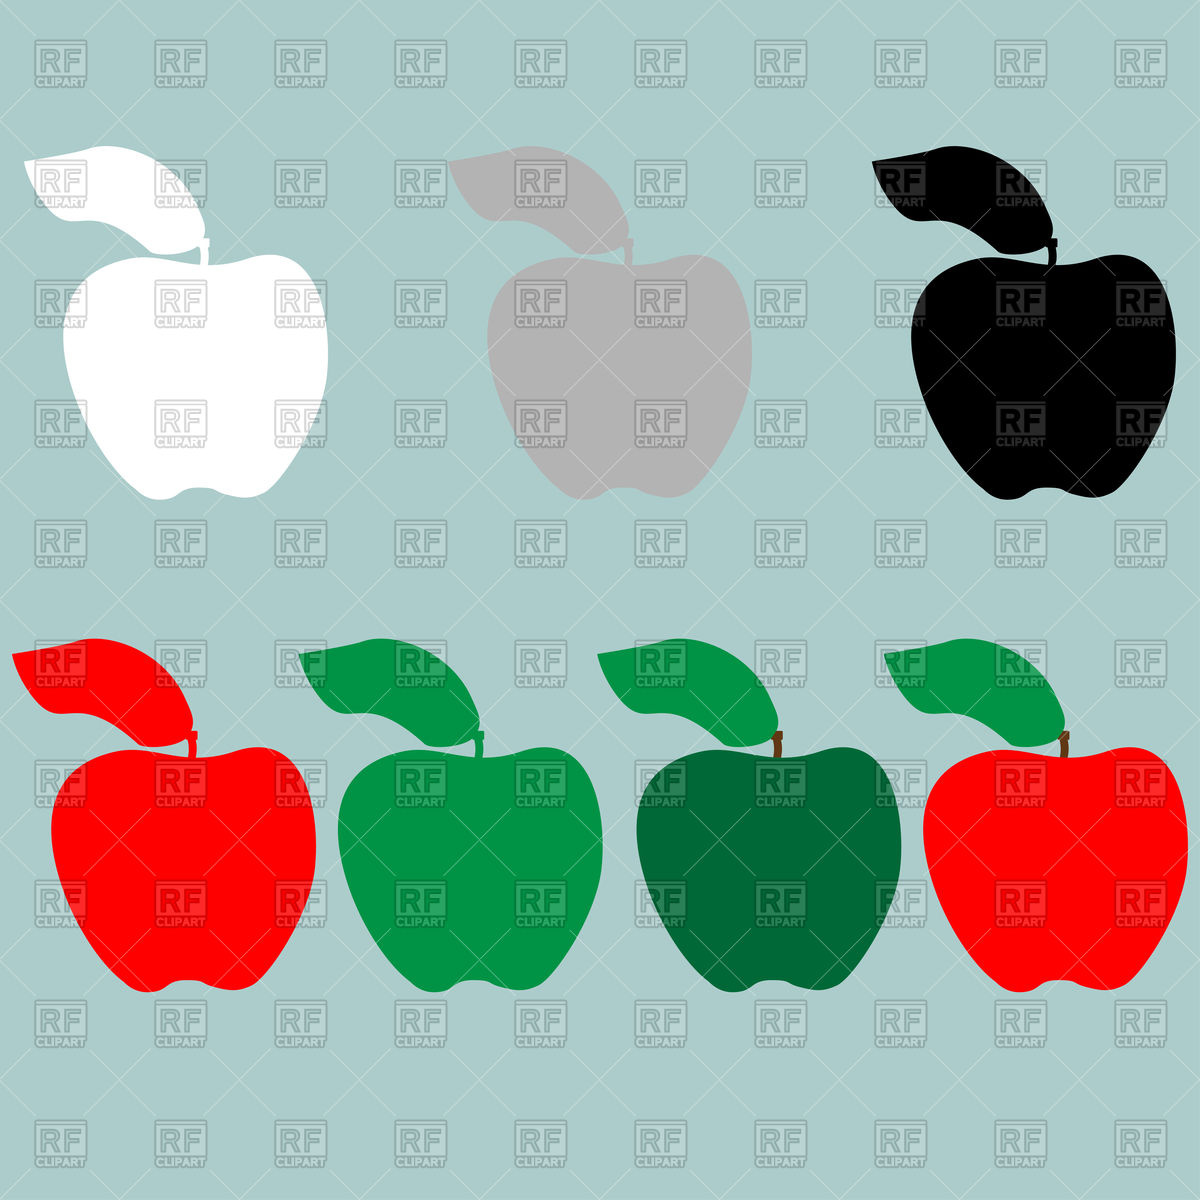 1200x1200 Apple Silhouettes On Cyan Background